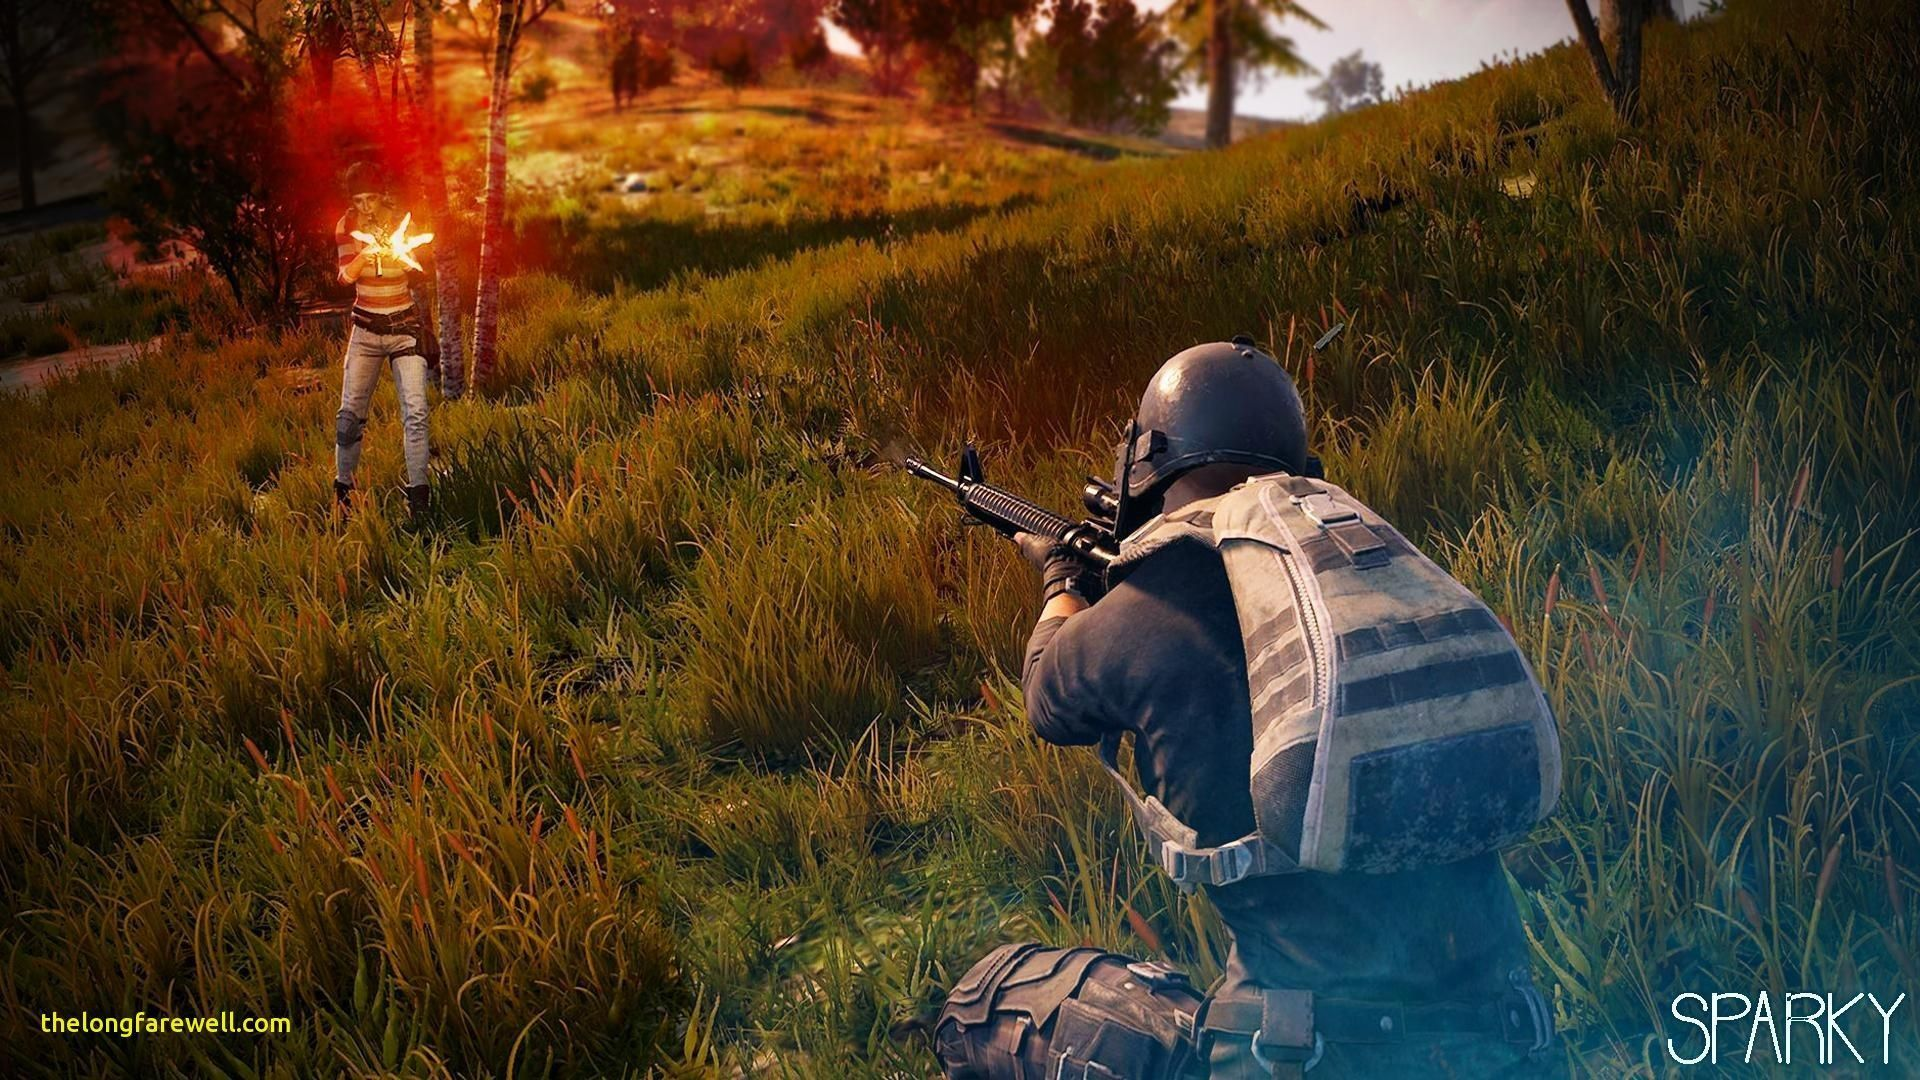 Player Unknown S Battlegrounds Pubg 4k Pubg Wallpaper Phone Pubg Wallpaper Iphone Pubg Wallpaper 192 Action Wallpaper Mobile Tricks 3d Wallpaper For Mobile